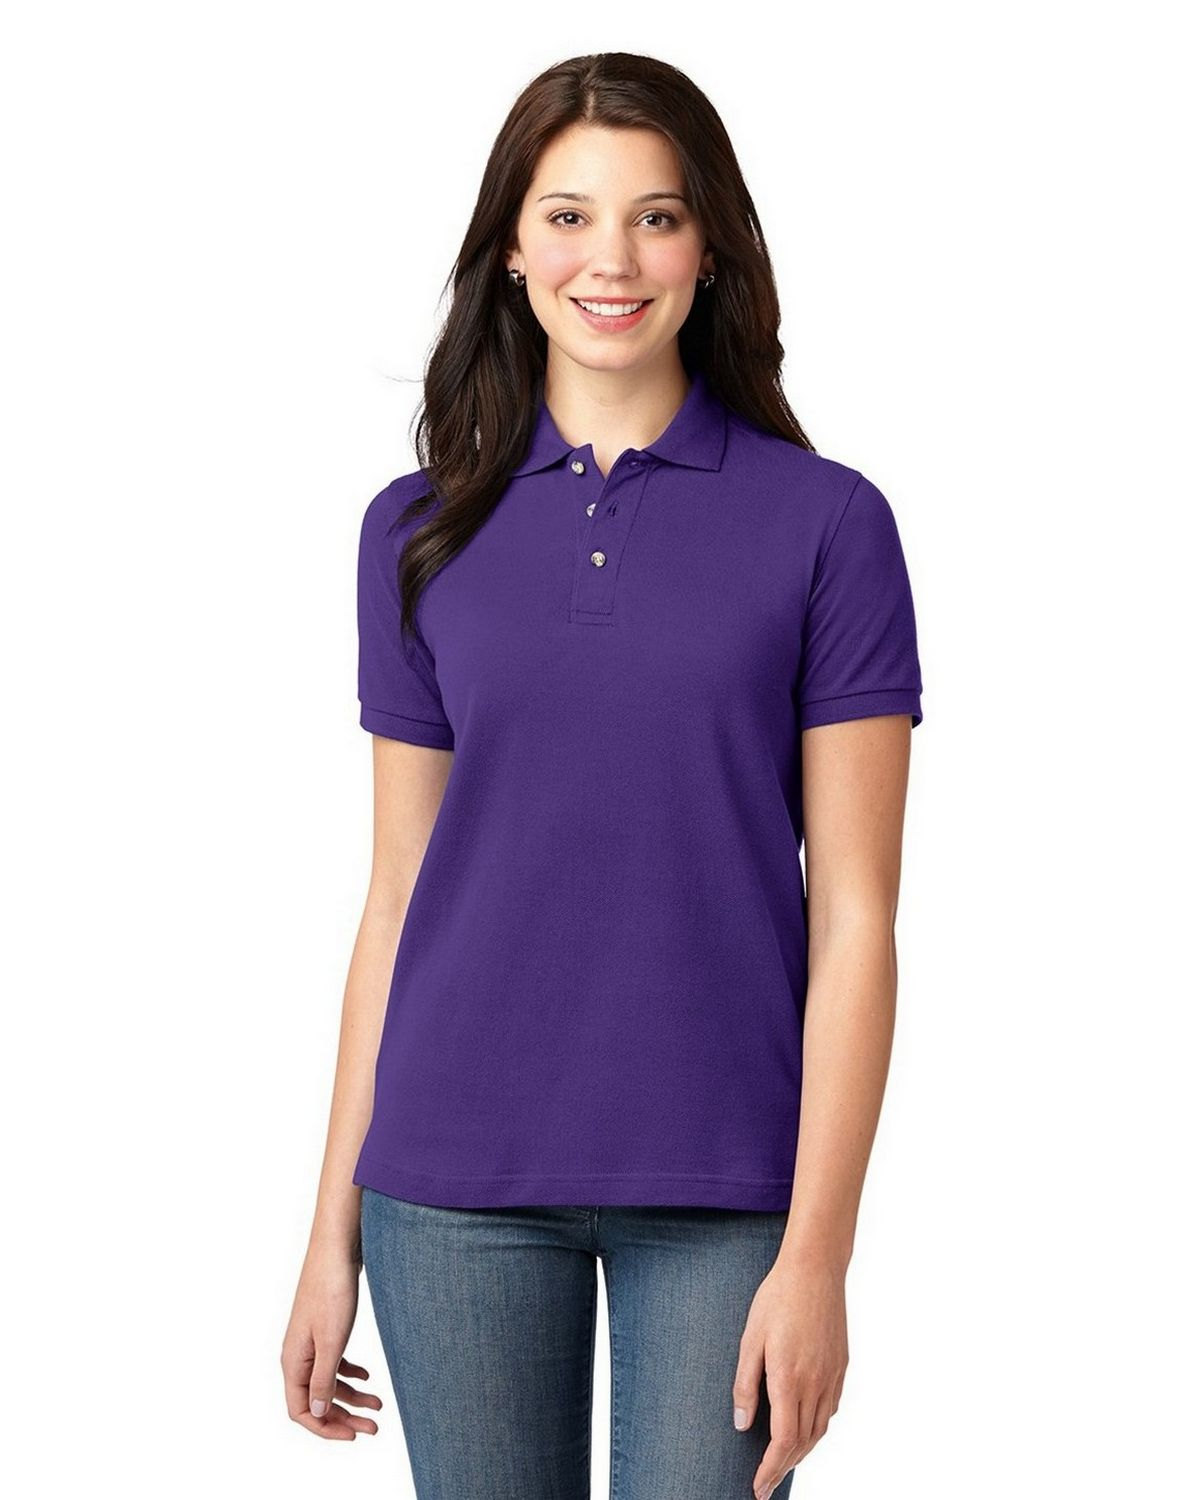 Port Authority L420 Womens Pique Knit Polo - Purple - XS